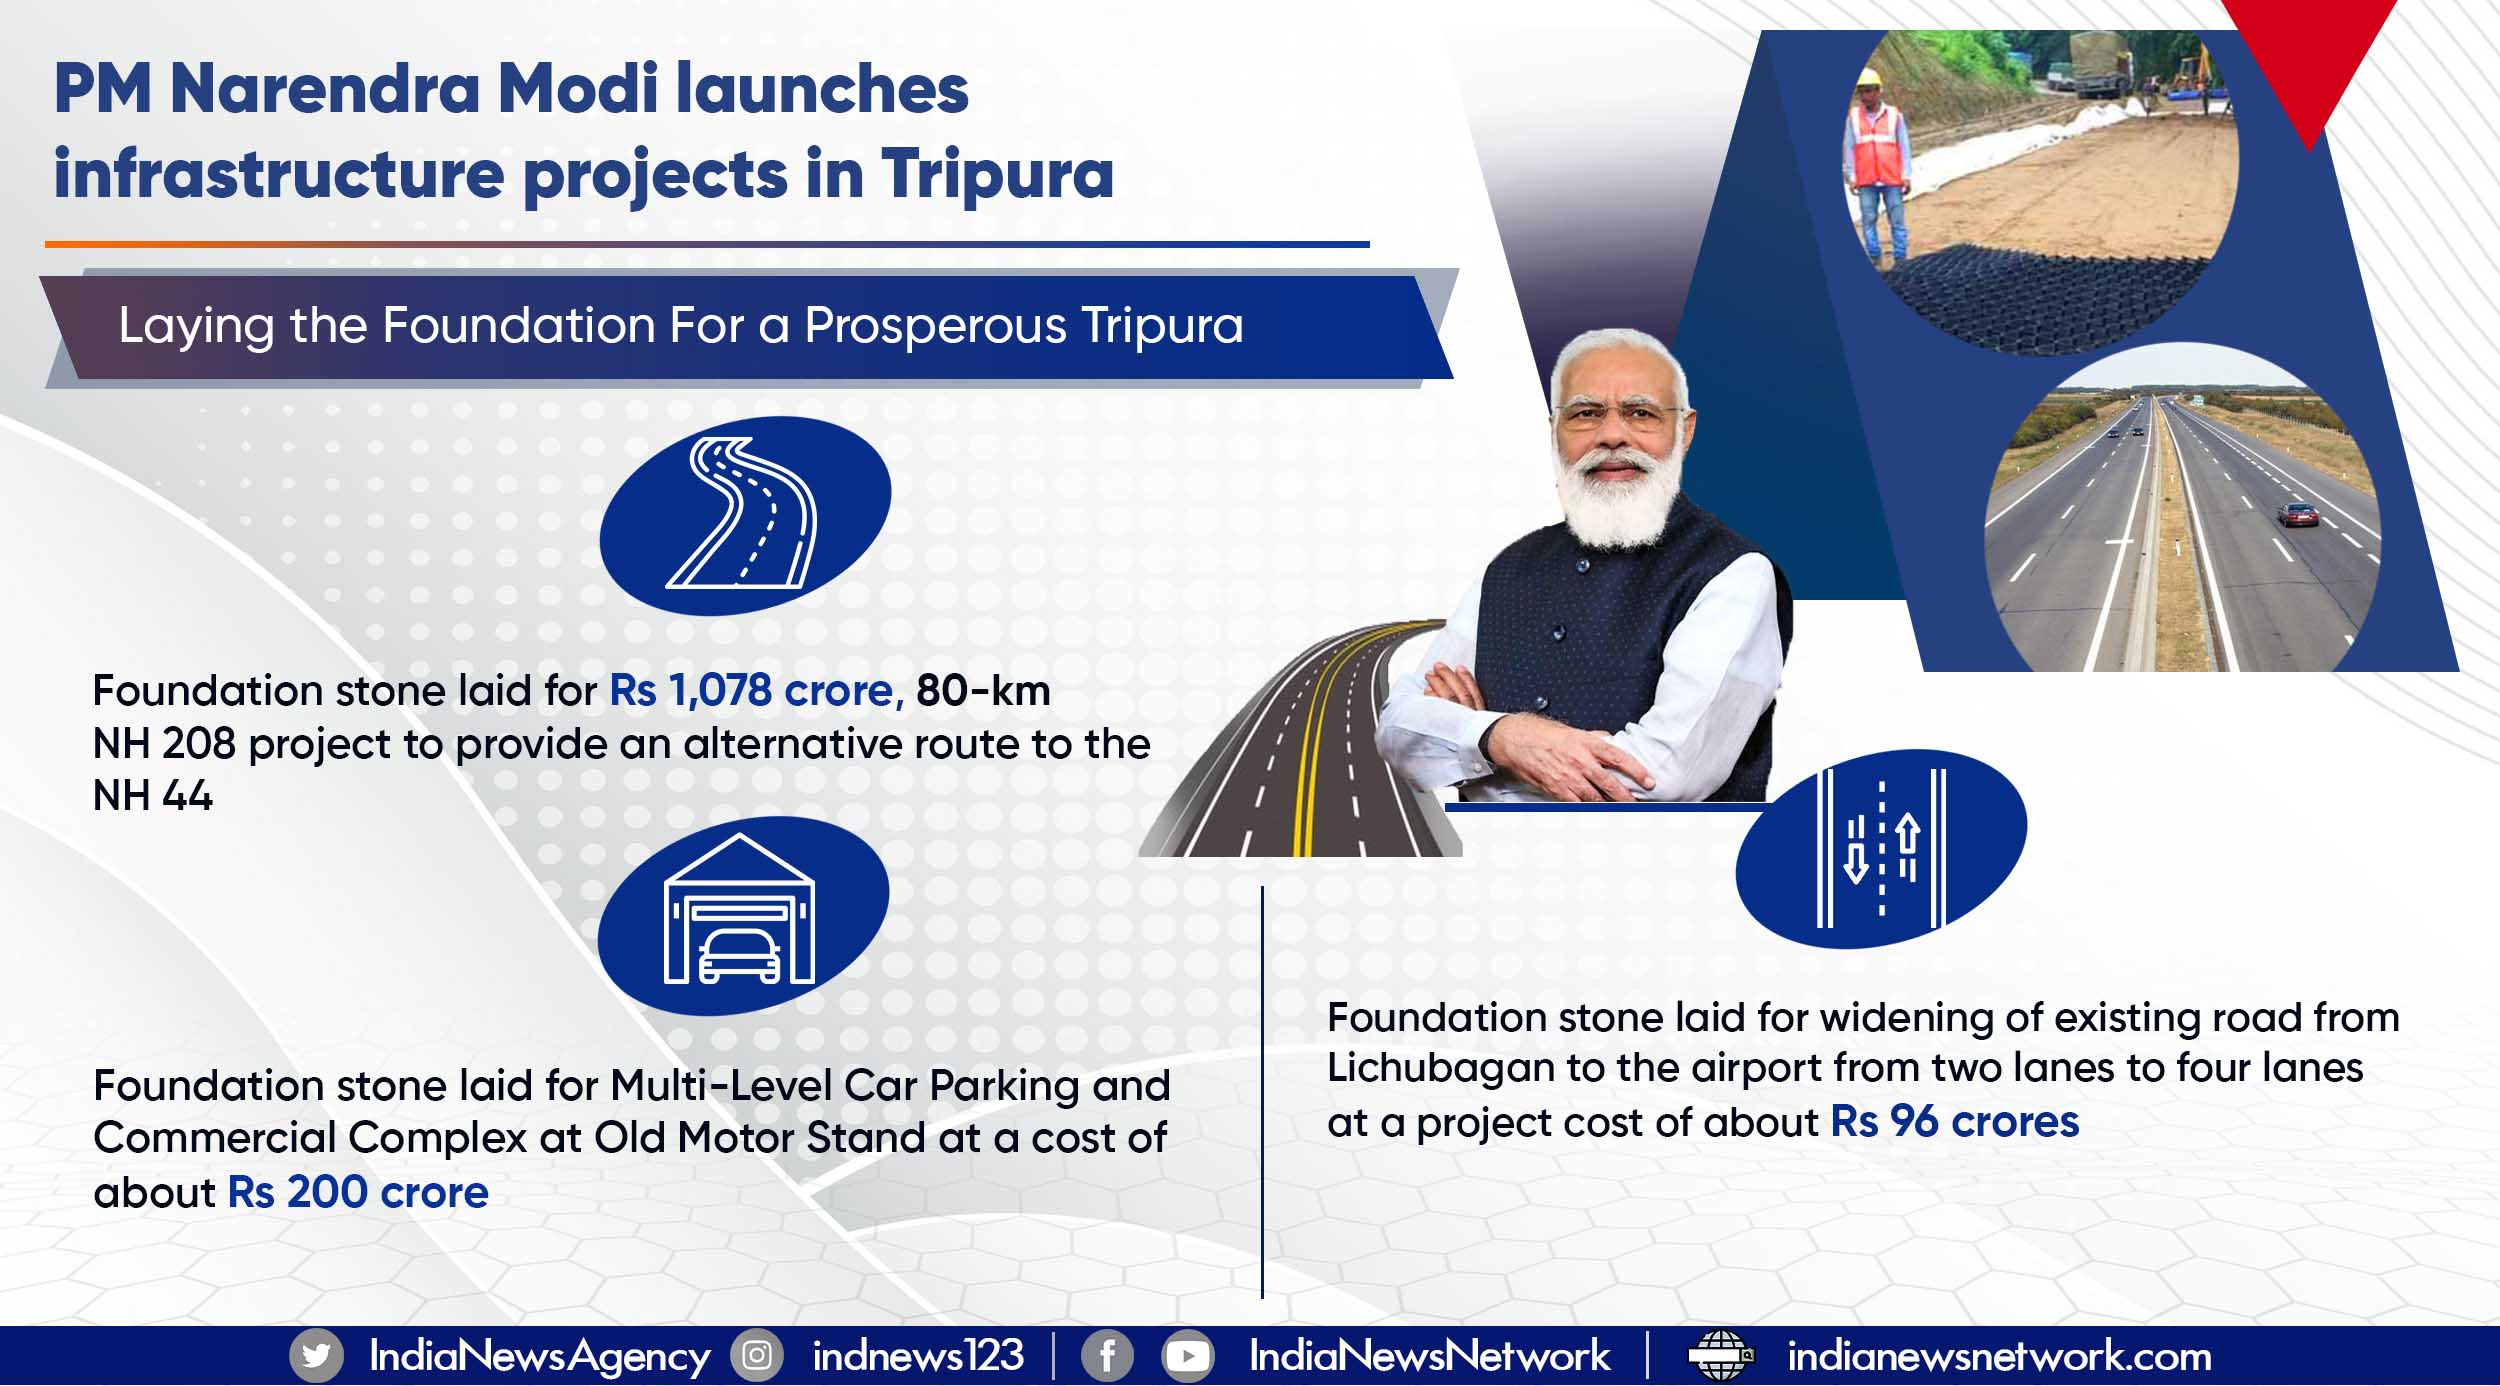 PM Narendra Modi launches infrastructure projects in Tripura